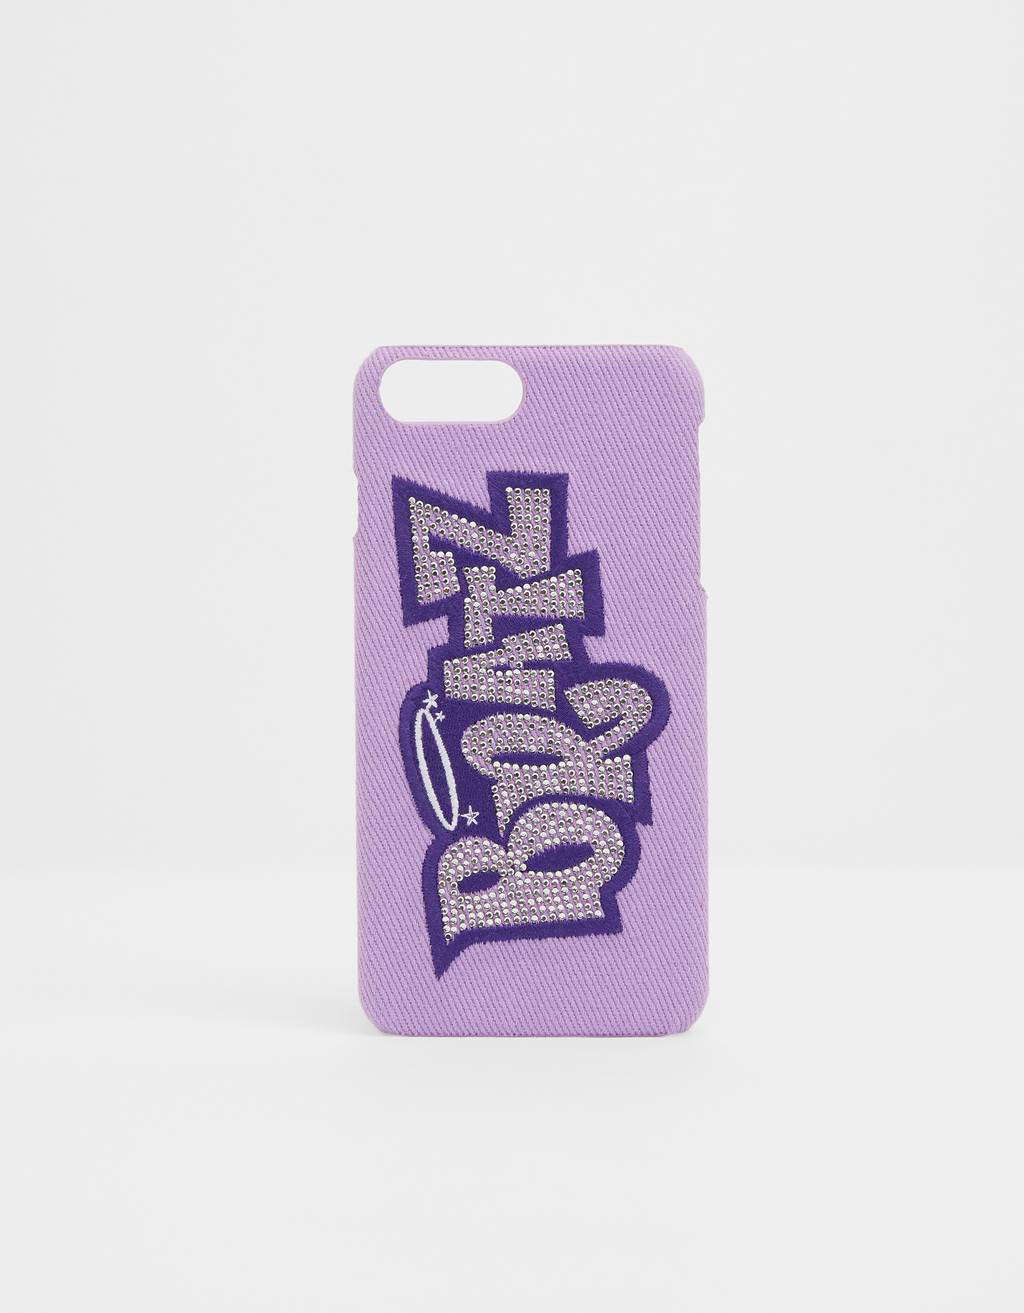 Cover Bratz iPhone 6 Plus / 7 Plus / 8 Plus